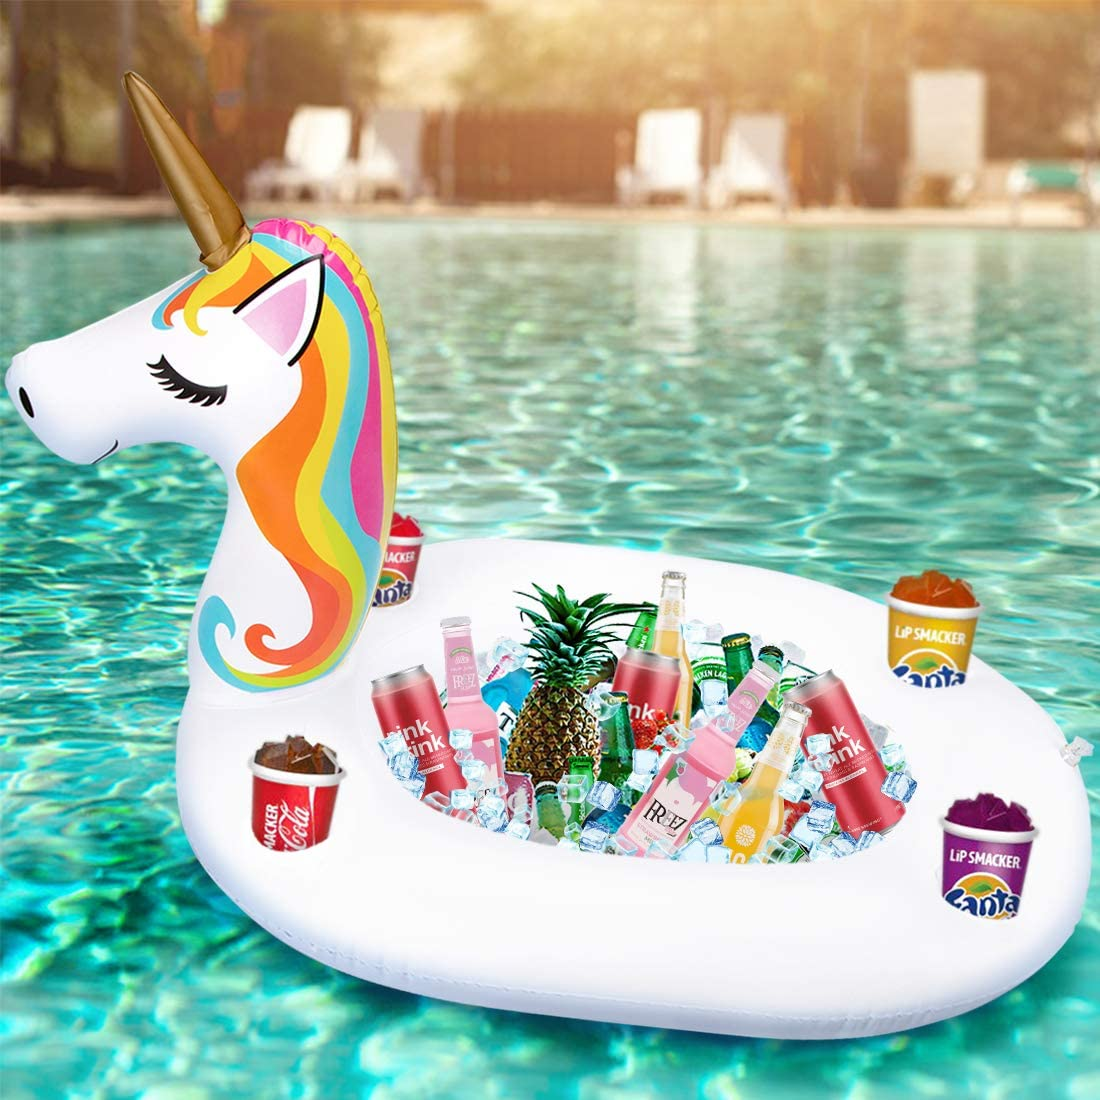 Inflatable Unicorn Serving Bar Ice Buffet Cooler Salad Food Drink Holder Beverage Fruit Candy Floating Tray Pool Party Picnic BBQ Supplies